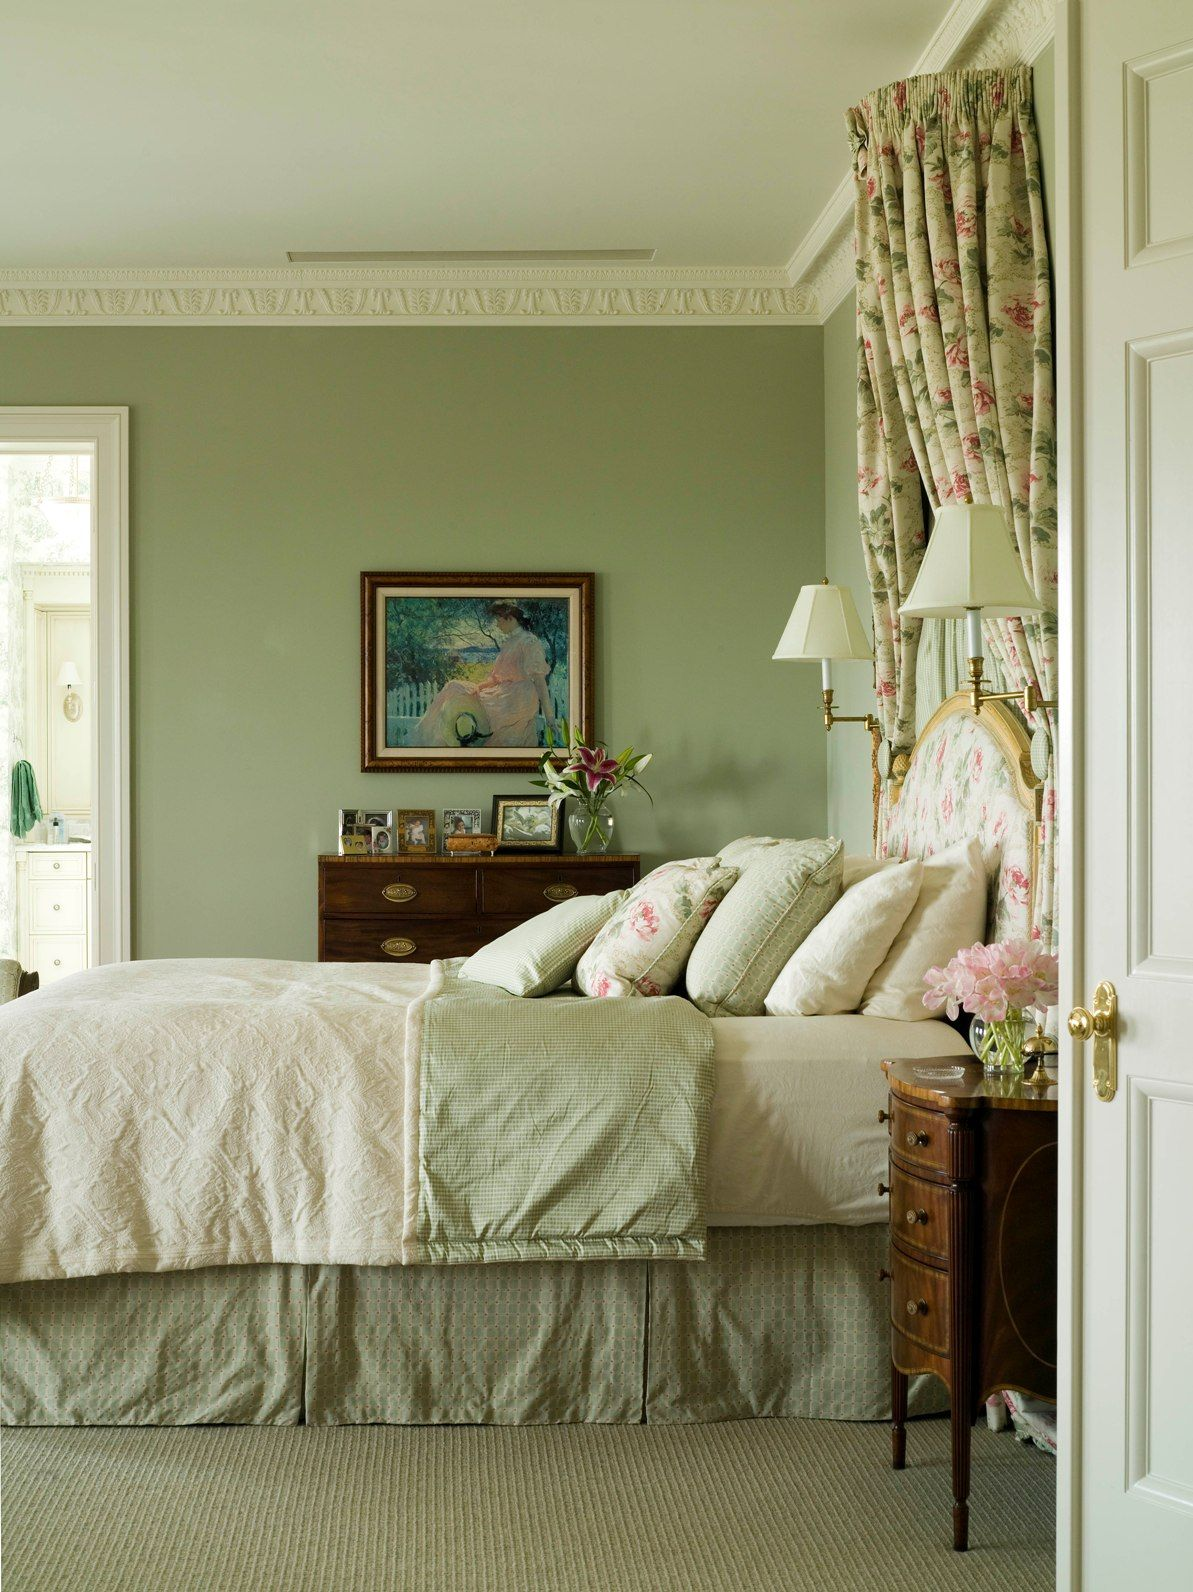 often bedrooms were treated as a sanctuary, or an escape for the